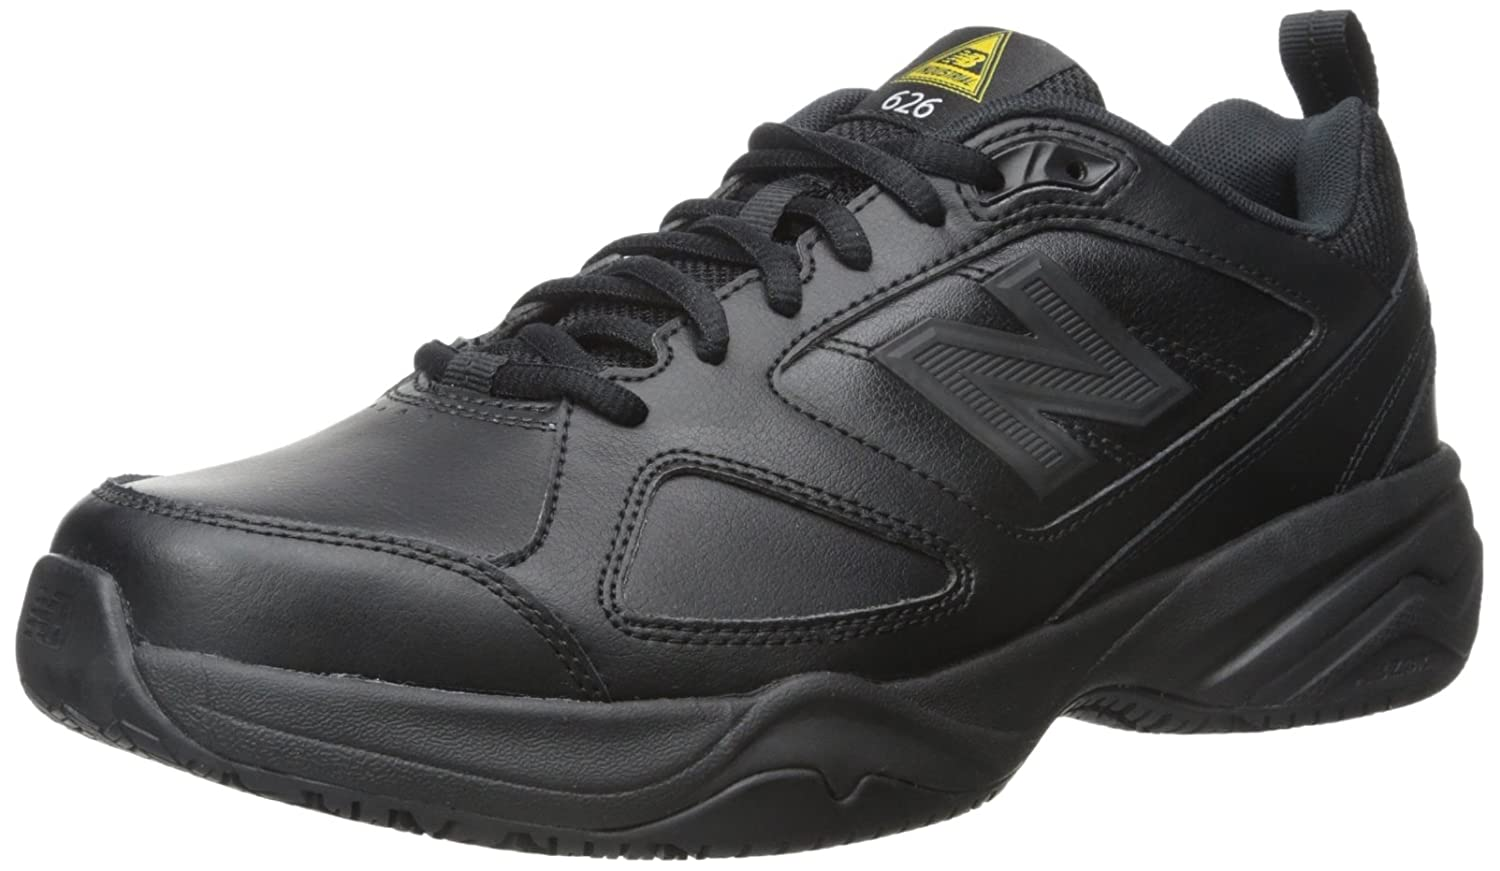 New Balance Men's MID626v2 Work Training Shoe B012PW5ZH8 16 2E US|Black